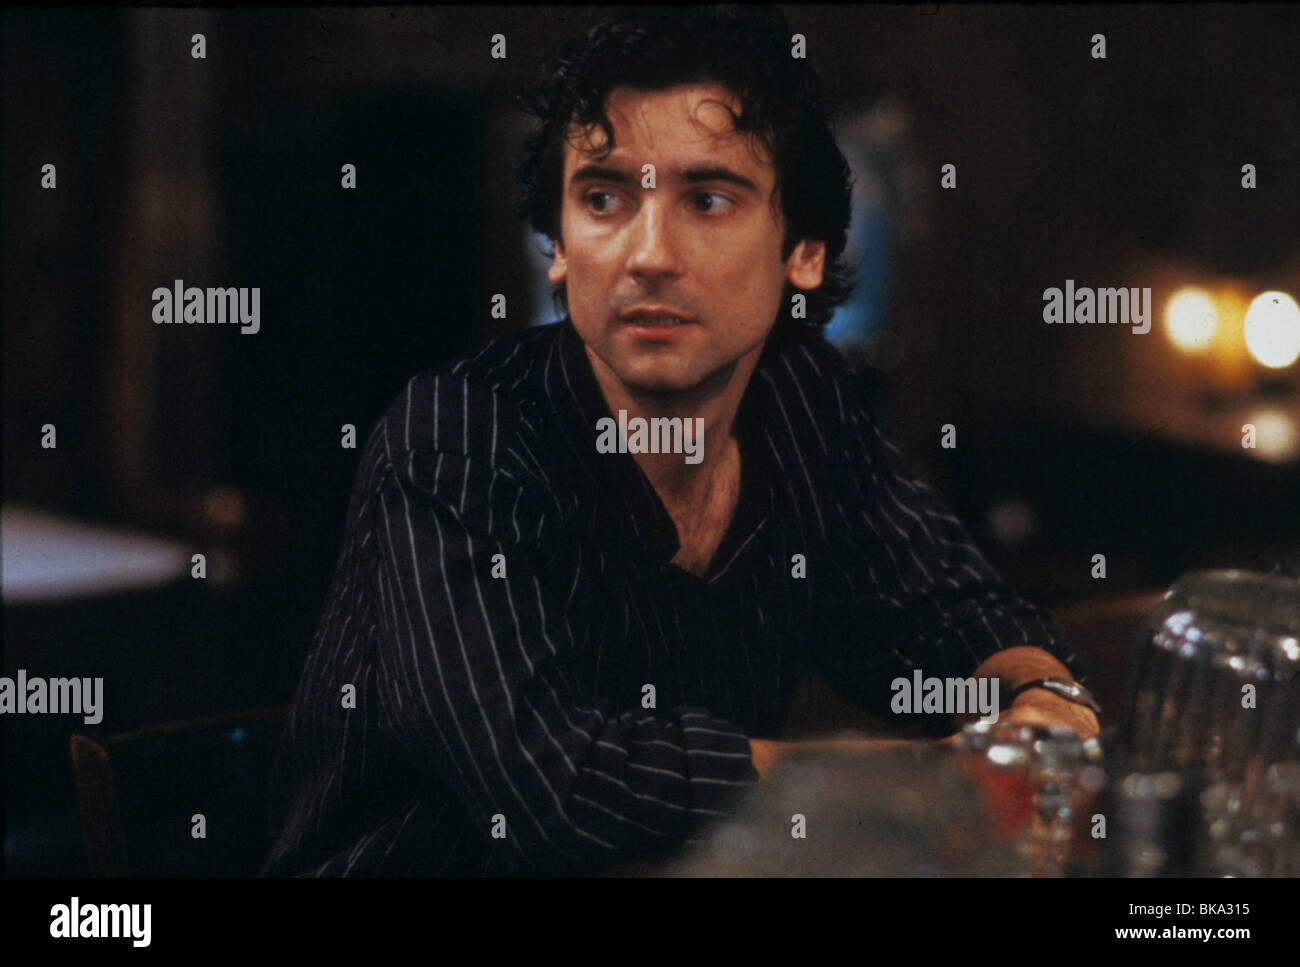 AFTER HOURS -1985 GRIFFIN DUNNE - Stock Image